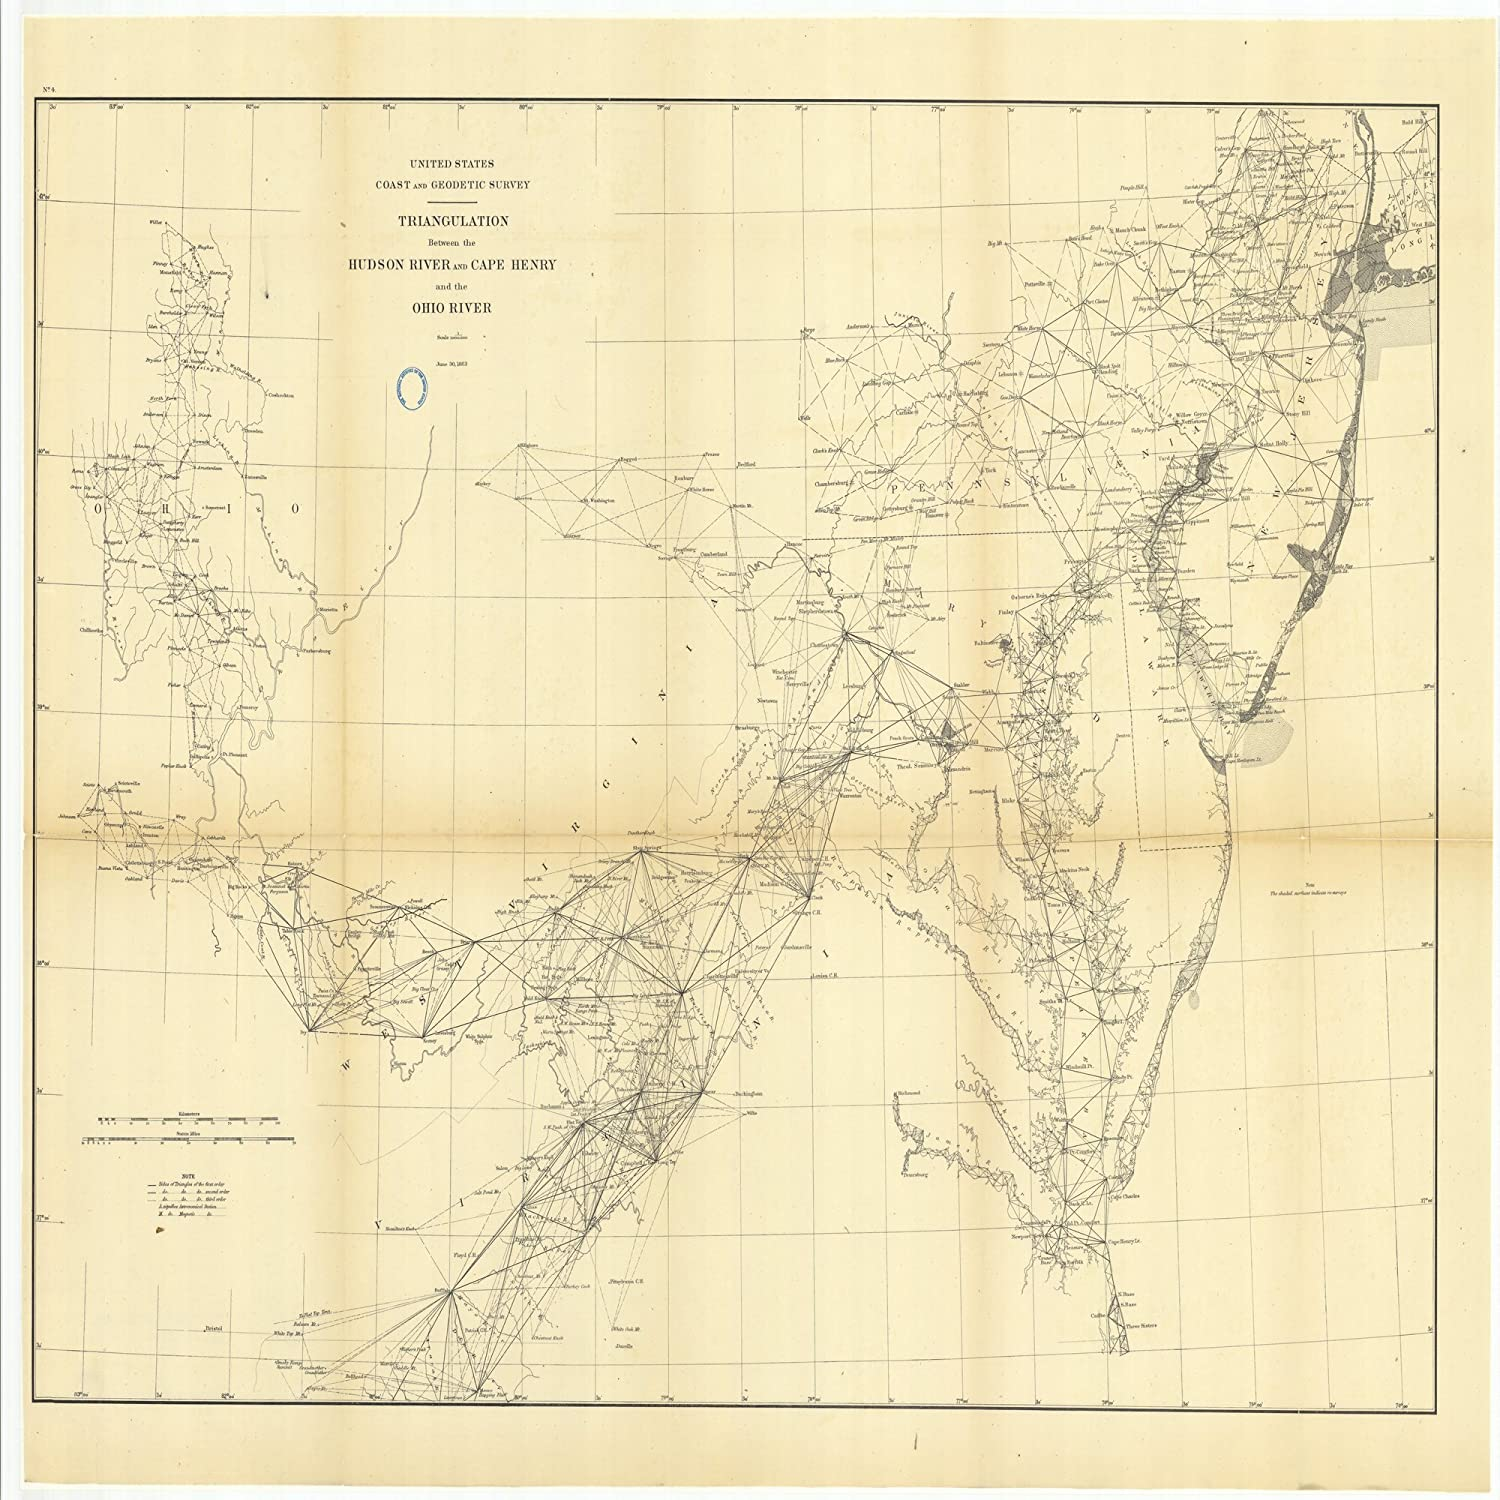 Amazon.com: Vintography c.1883 18 x 24 Reproduction Old Map ...